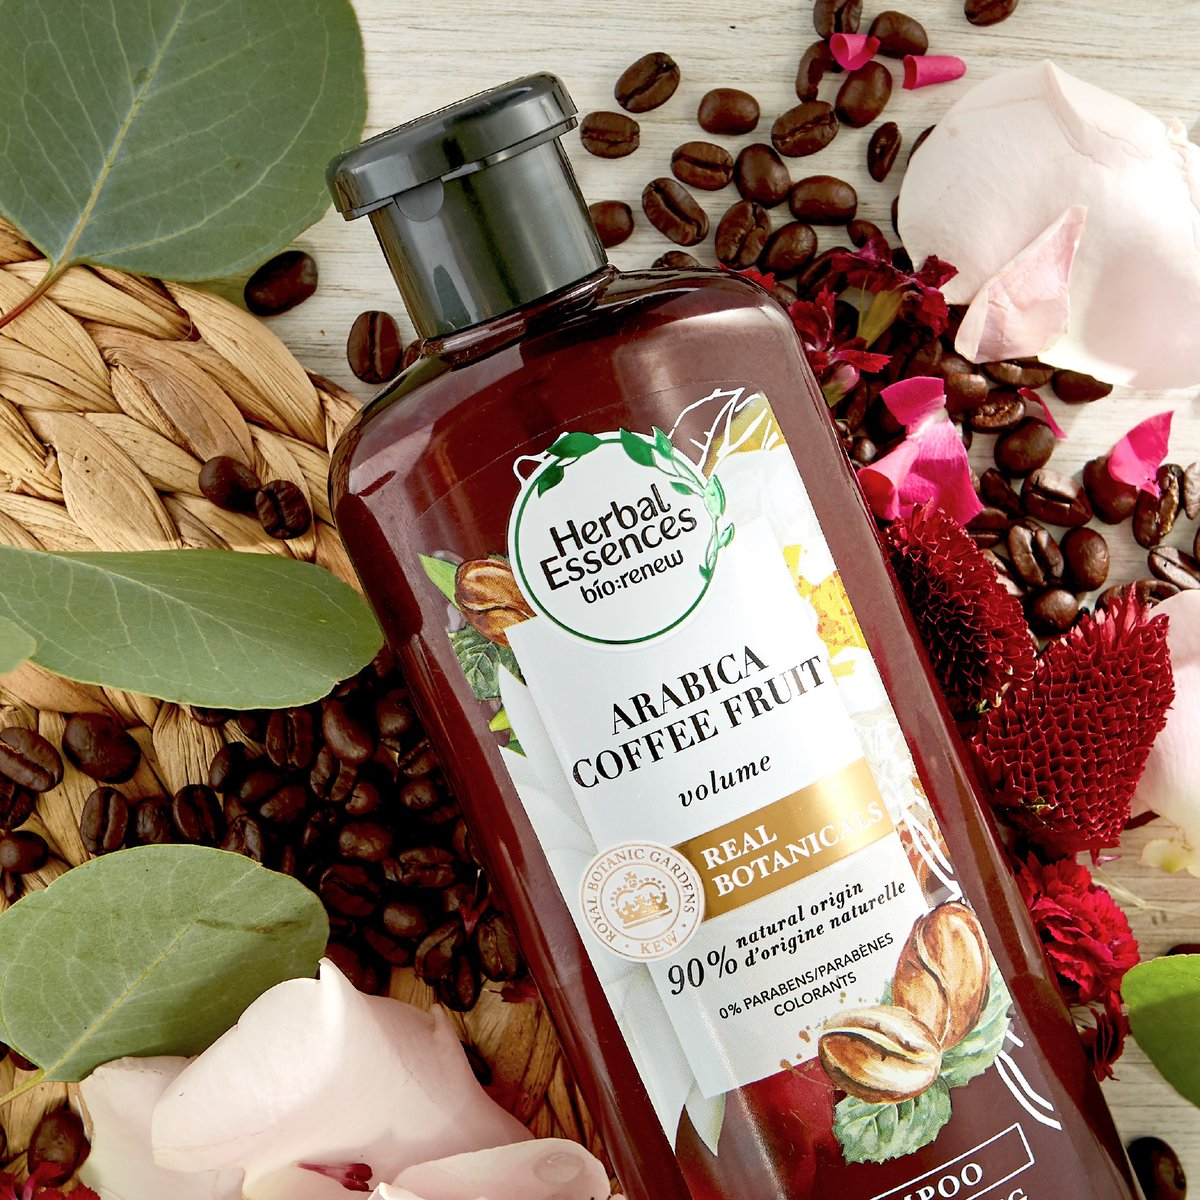 We know you'll love our Arabica Coffee Fruit Collection a Latte! ☕ It'll leave your hair soft and full of volume, plus it has real botanicals endorsed by the Royal Botanic Gardens, Kew @KewGardens. https://t.co/mRaOOMM4Wb